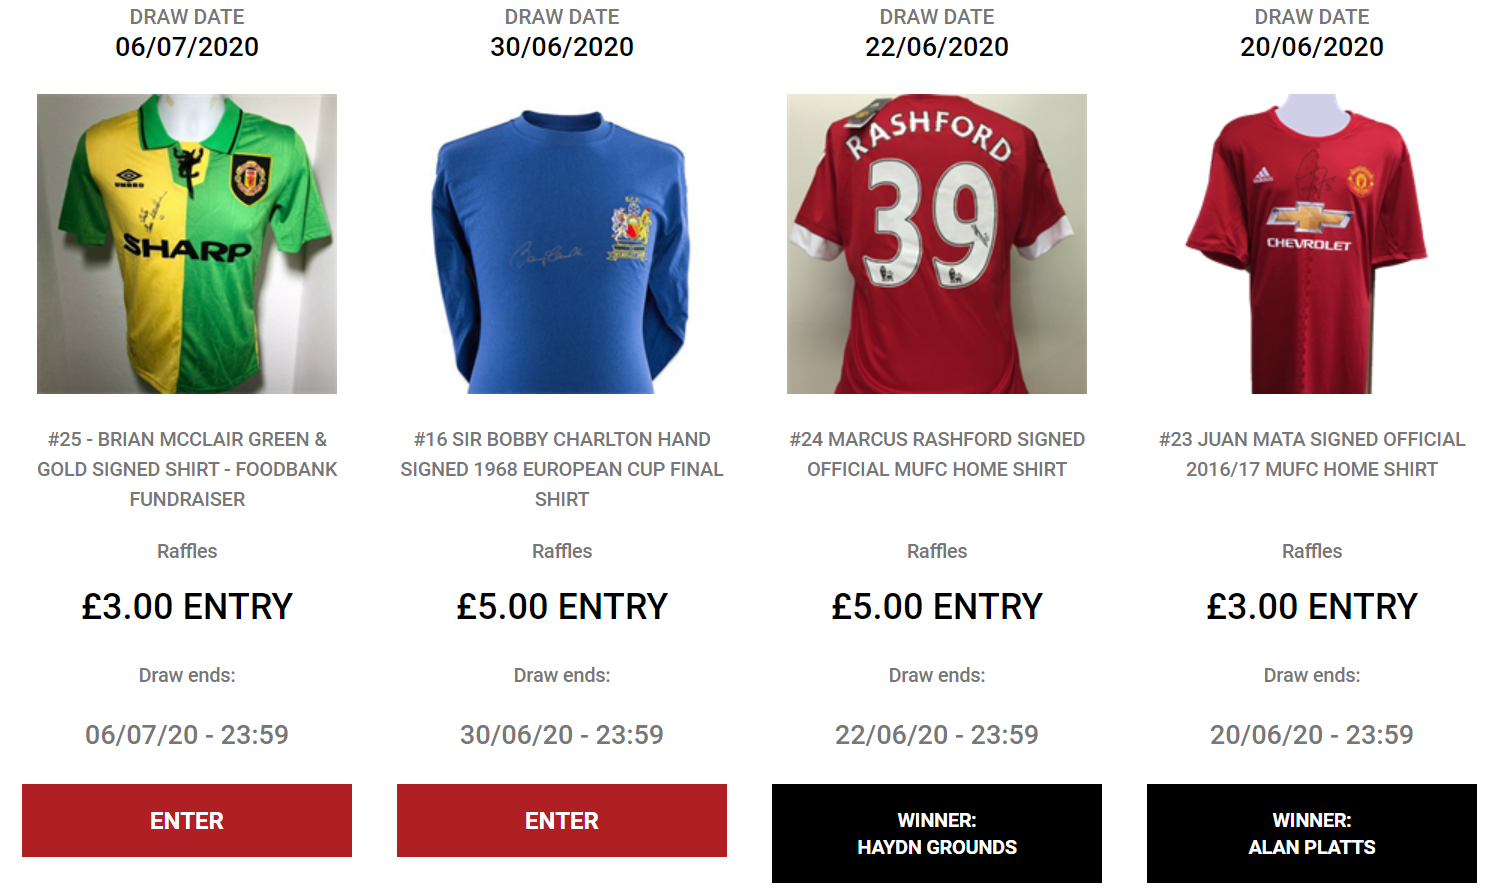 FORTHCOMING DRAWS:   #25 - Sir Bobby Charlton Hand Signed 1968 European Cup Final Shirt - ENDS: 30/06/2020 23:59  #26 - Brian McClair Green & Gold signed shirt - FOODBANK  FUNDRAISER - ENDS: 06/07/2020 23:59